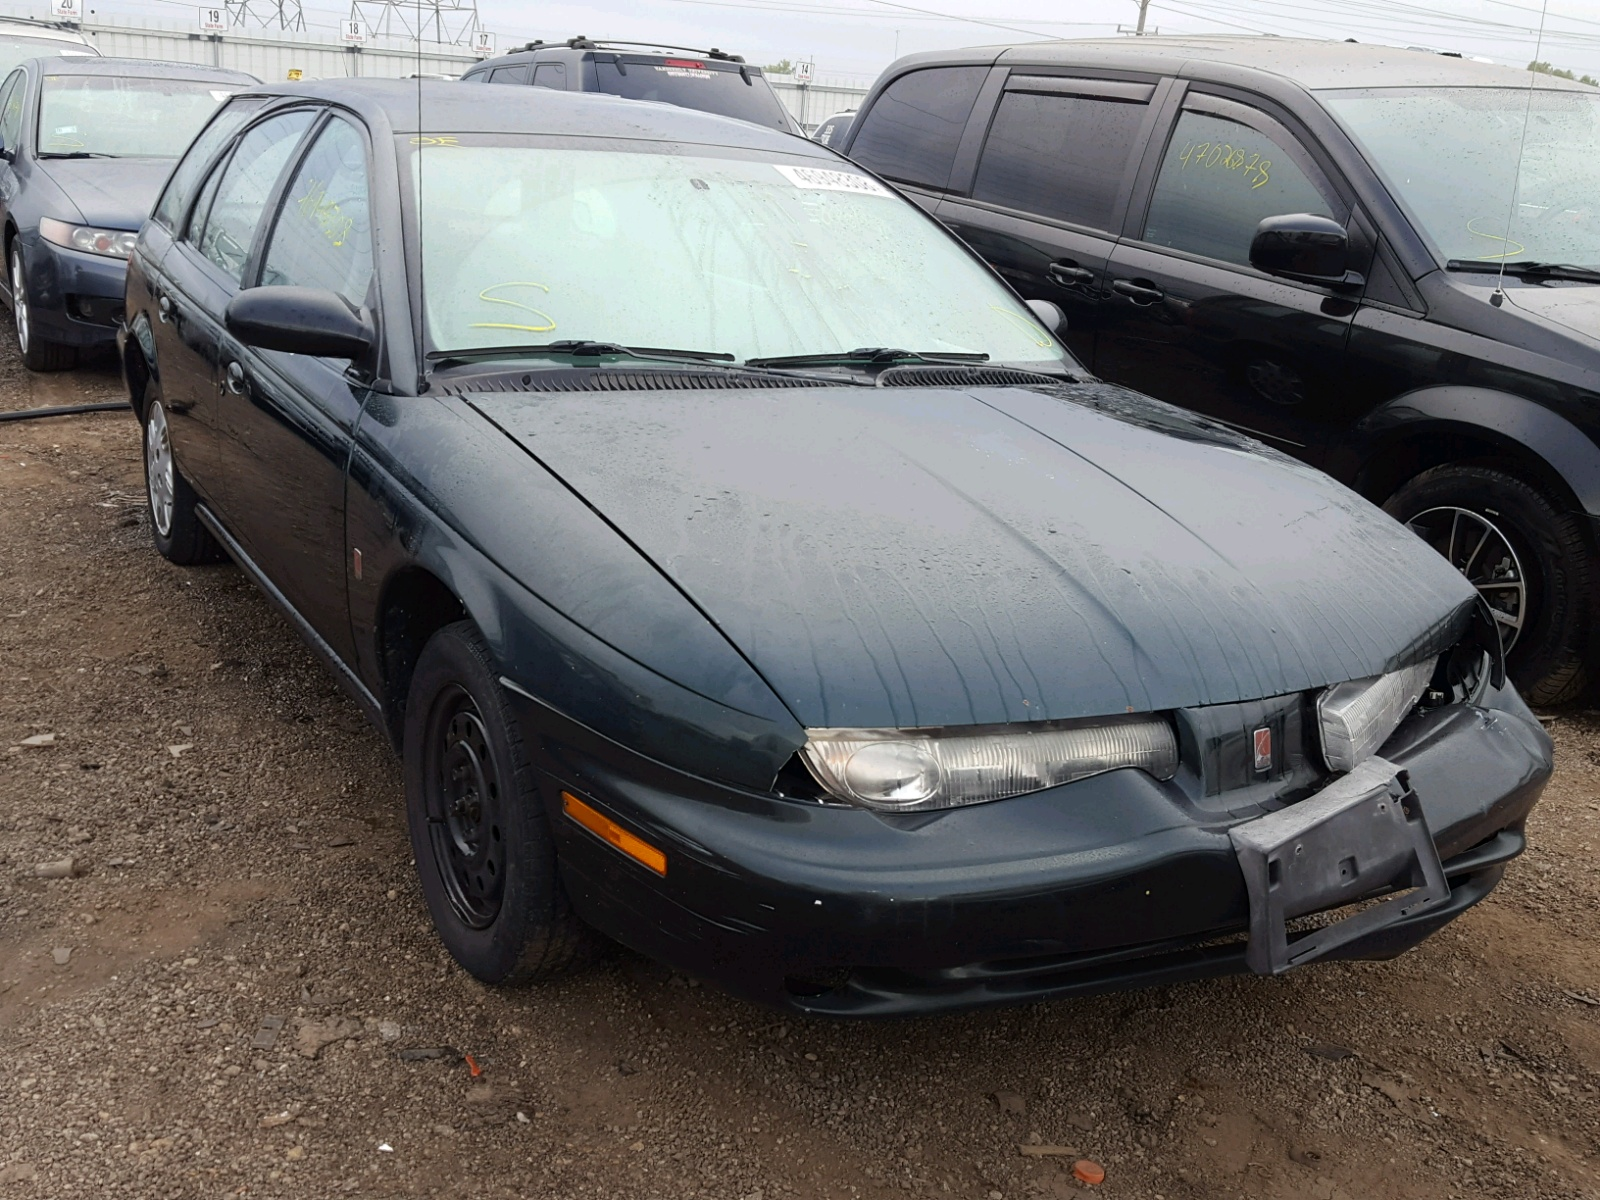 Damaged Cars for Sale Near Me Awesome Damaged Saturn S Series Car for Sale and Auction